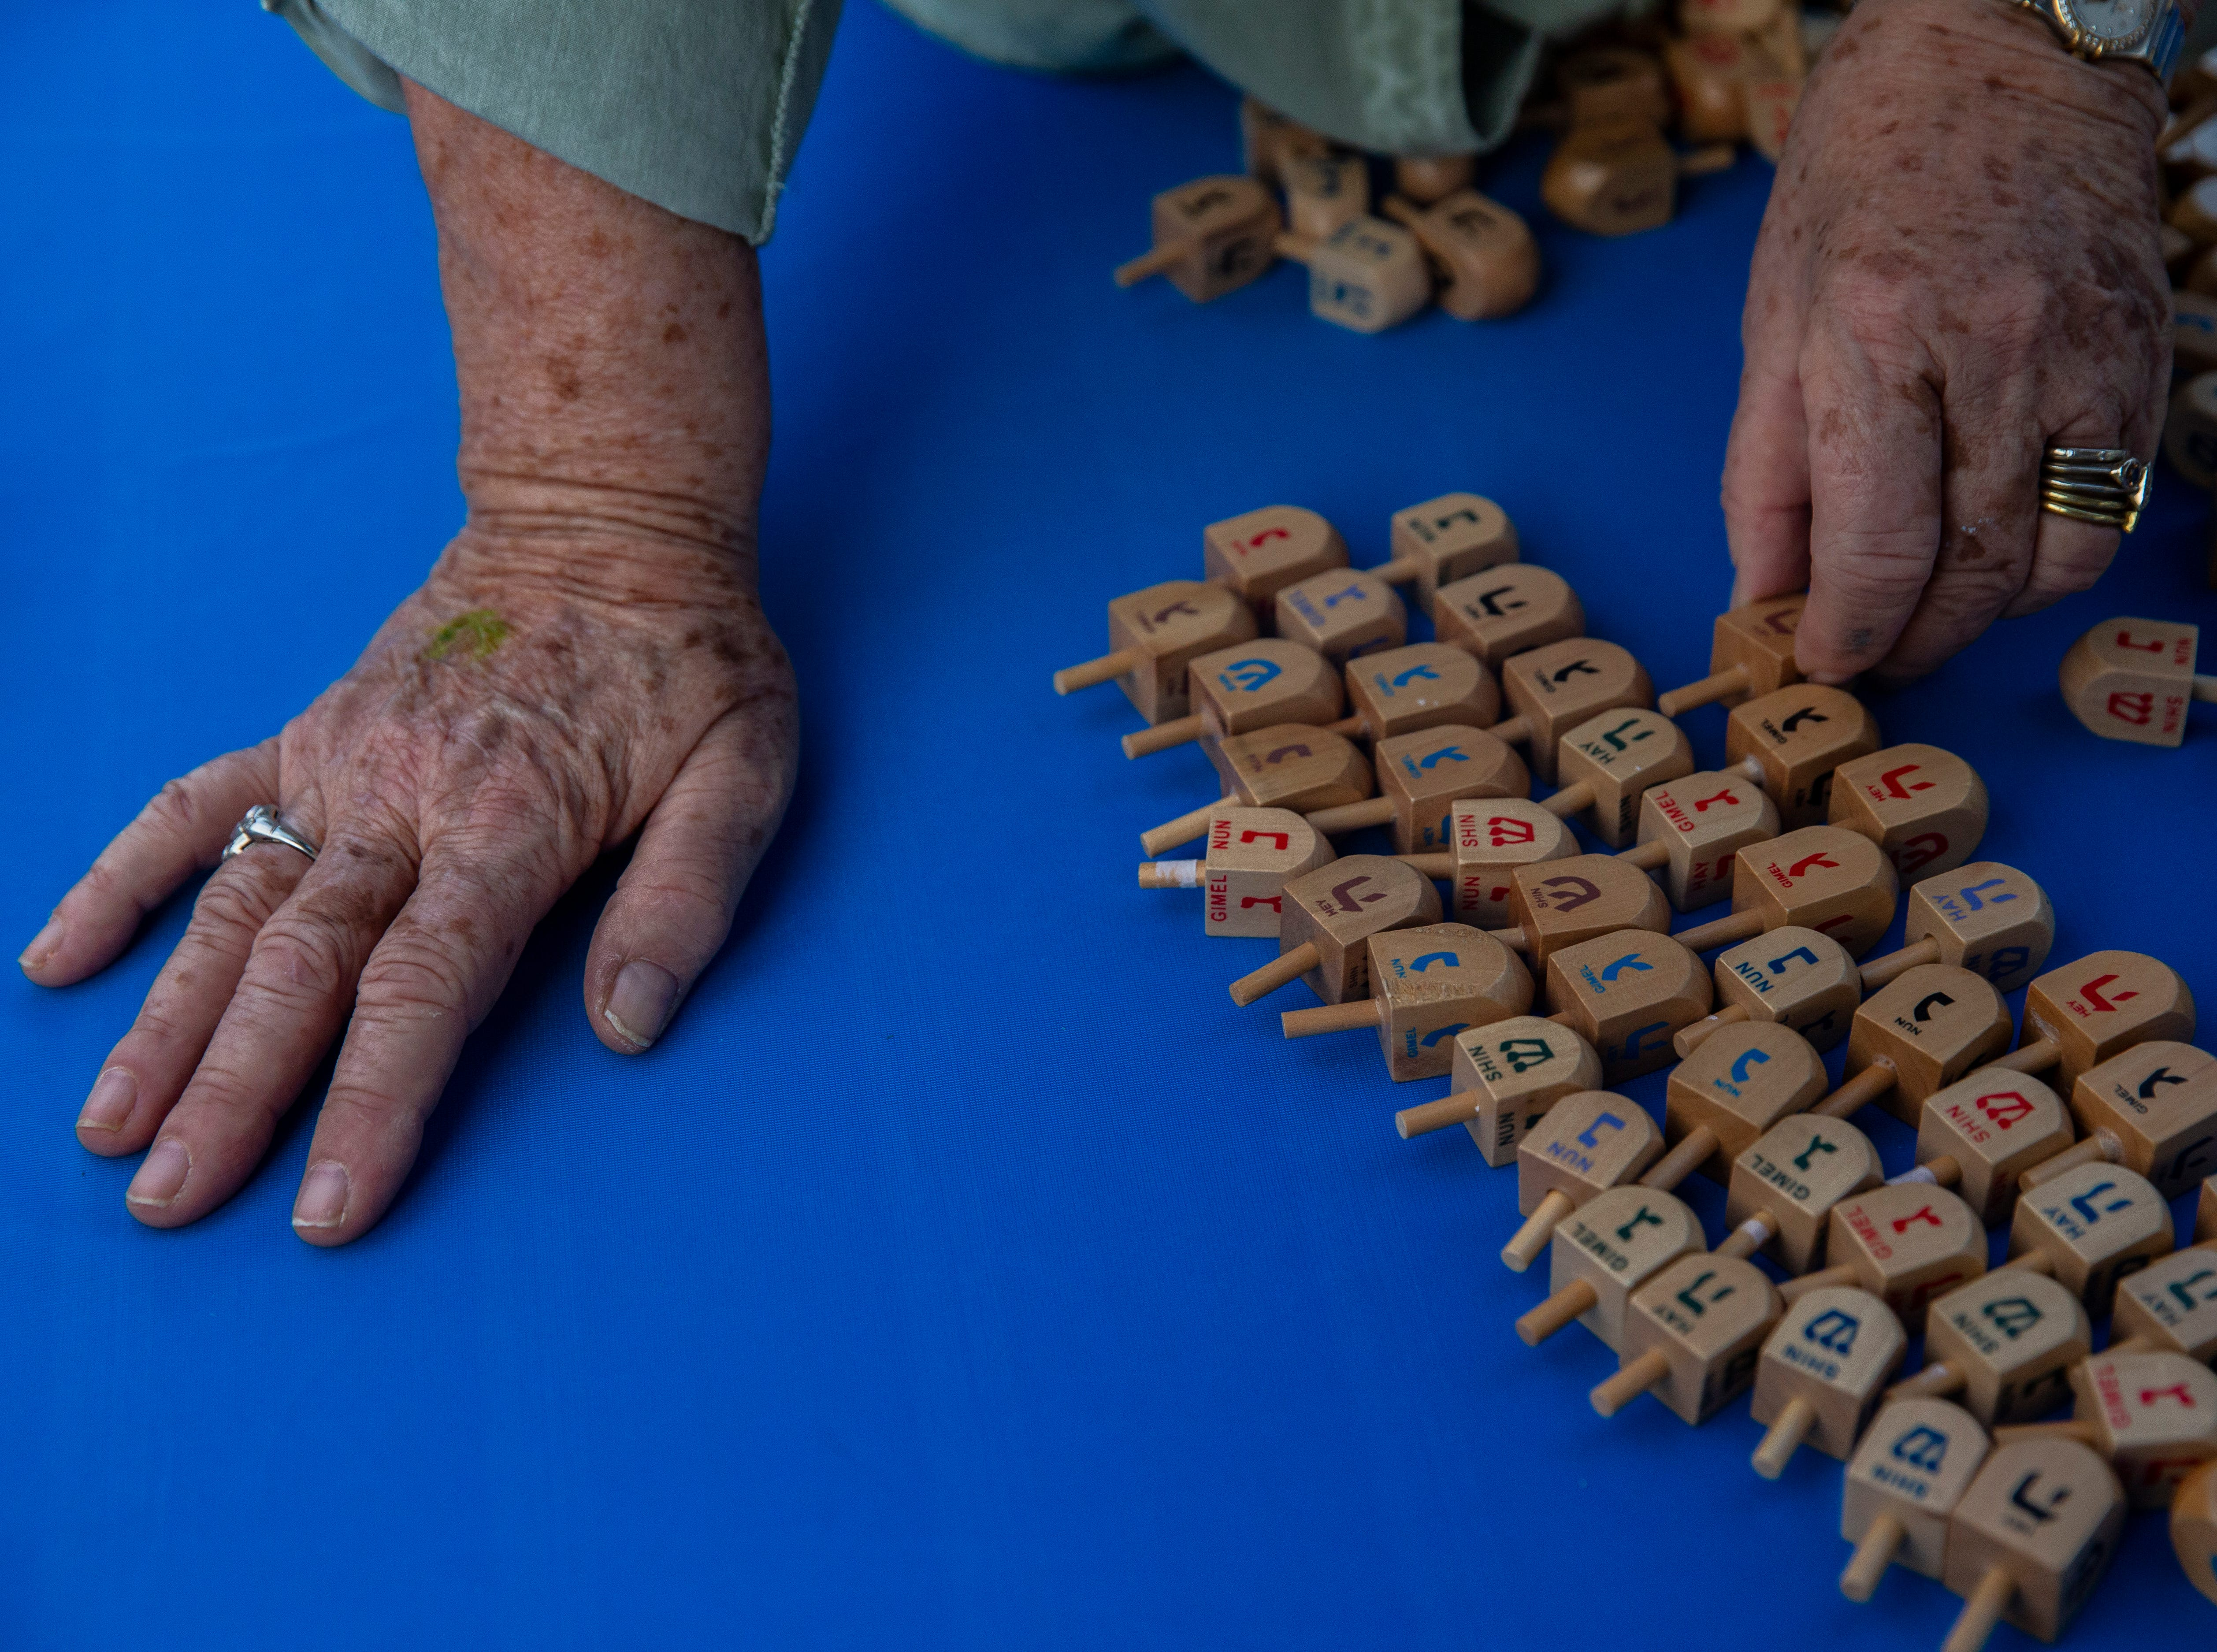 Linda Simon, with the Woman's Cultural Alliance of Naples, arranges wooden dreidels for a children's game at their stall called Spin the dreidel and win a prize, during the 20th annual Hanukkah celebration at the Mercato Lawn on Monday, Dec. 3, 2018, organized by the Jewish Federation.